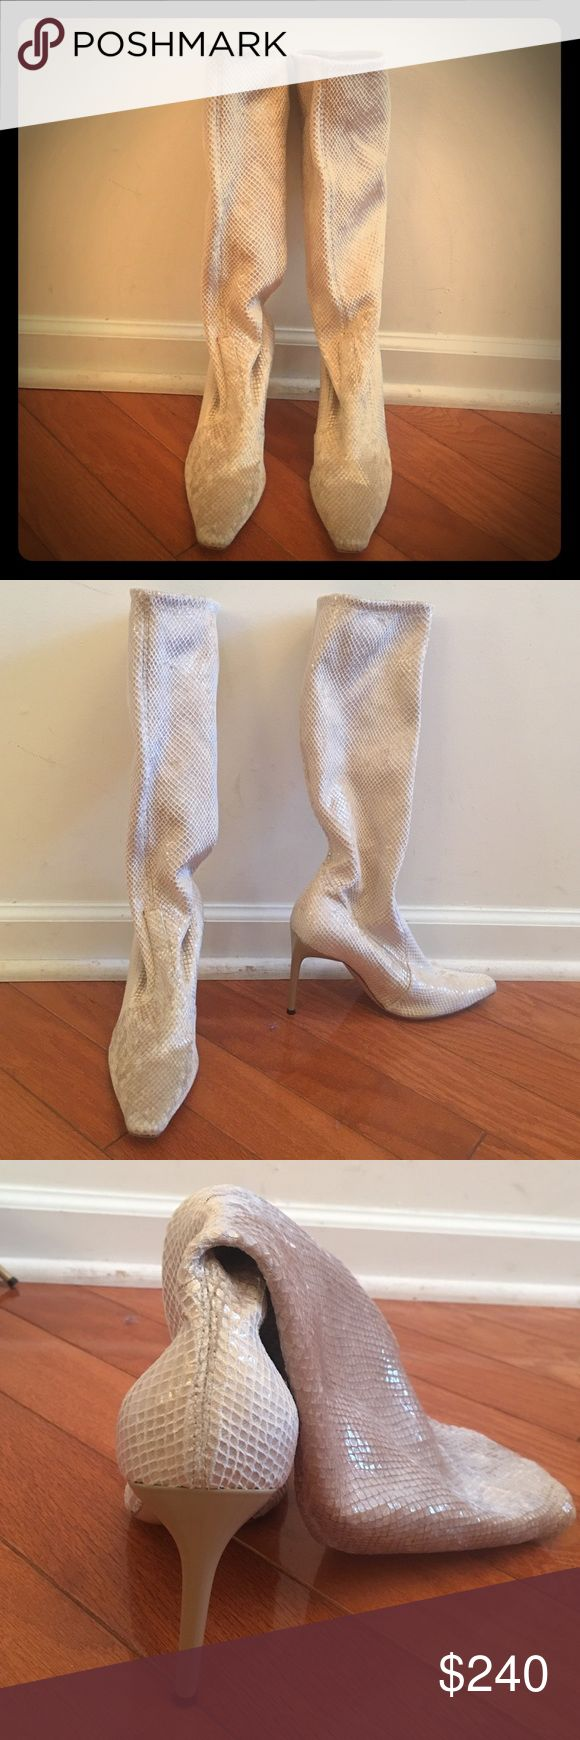 Casadei Snake Print Stretch Boot Size 6.5 Absolutely stunning bone color snake print stretch boots. These boots will have people stopping you on the street. They are so comfortable yet glamorous. Some wear on soles. Casadei Shoes Heeled Boots